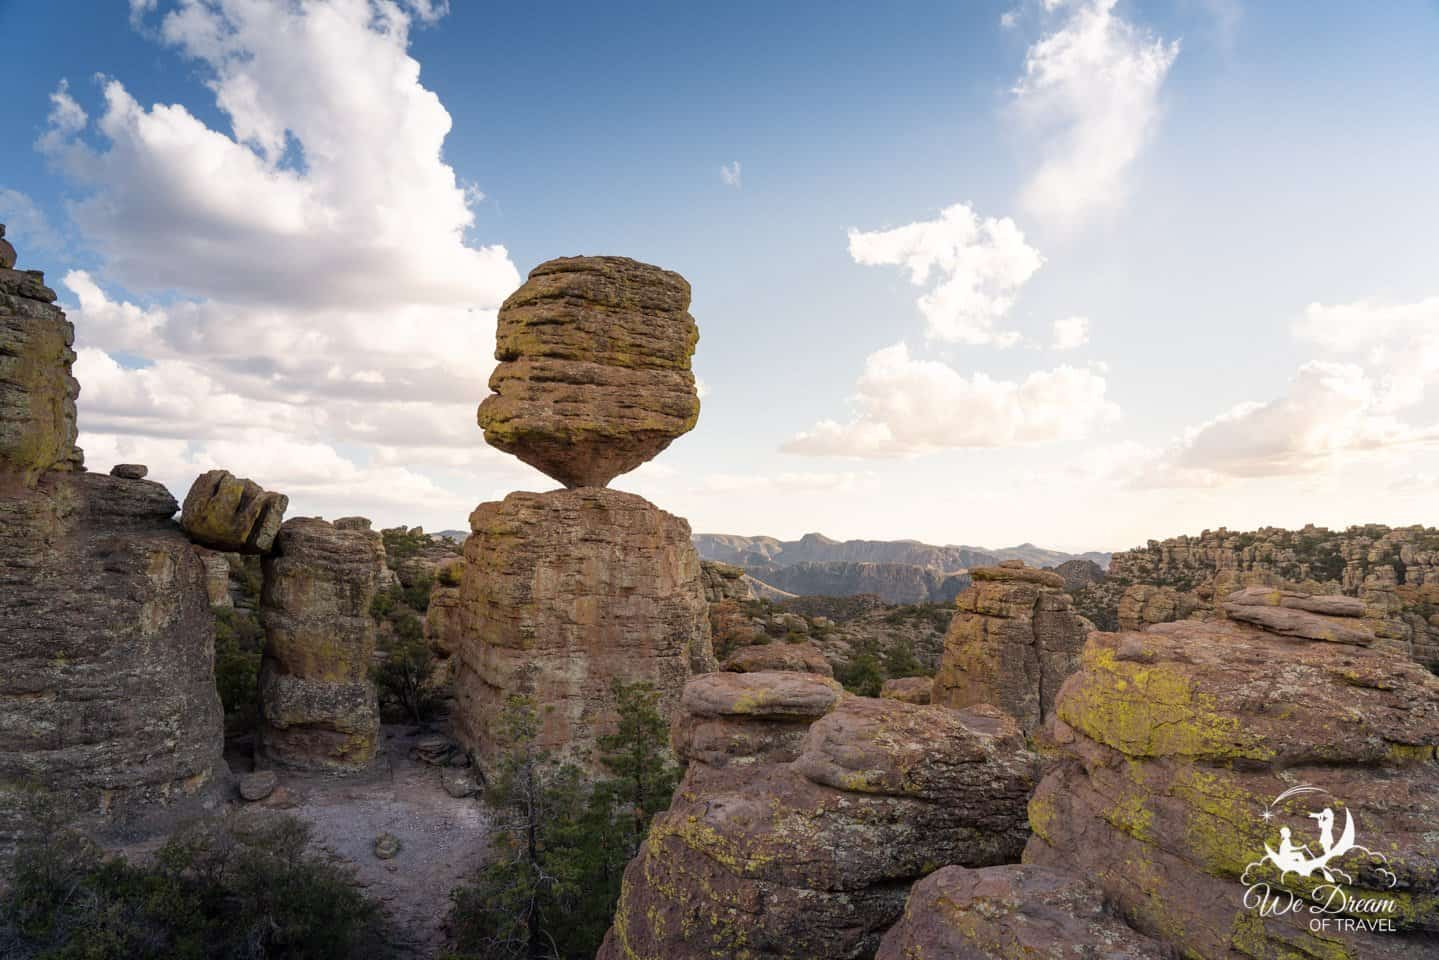 A balanced rock looks like it could topple over at any time in Chiricahua